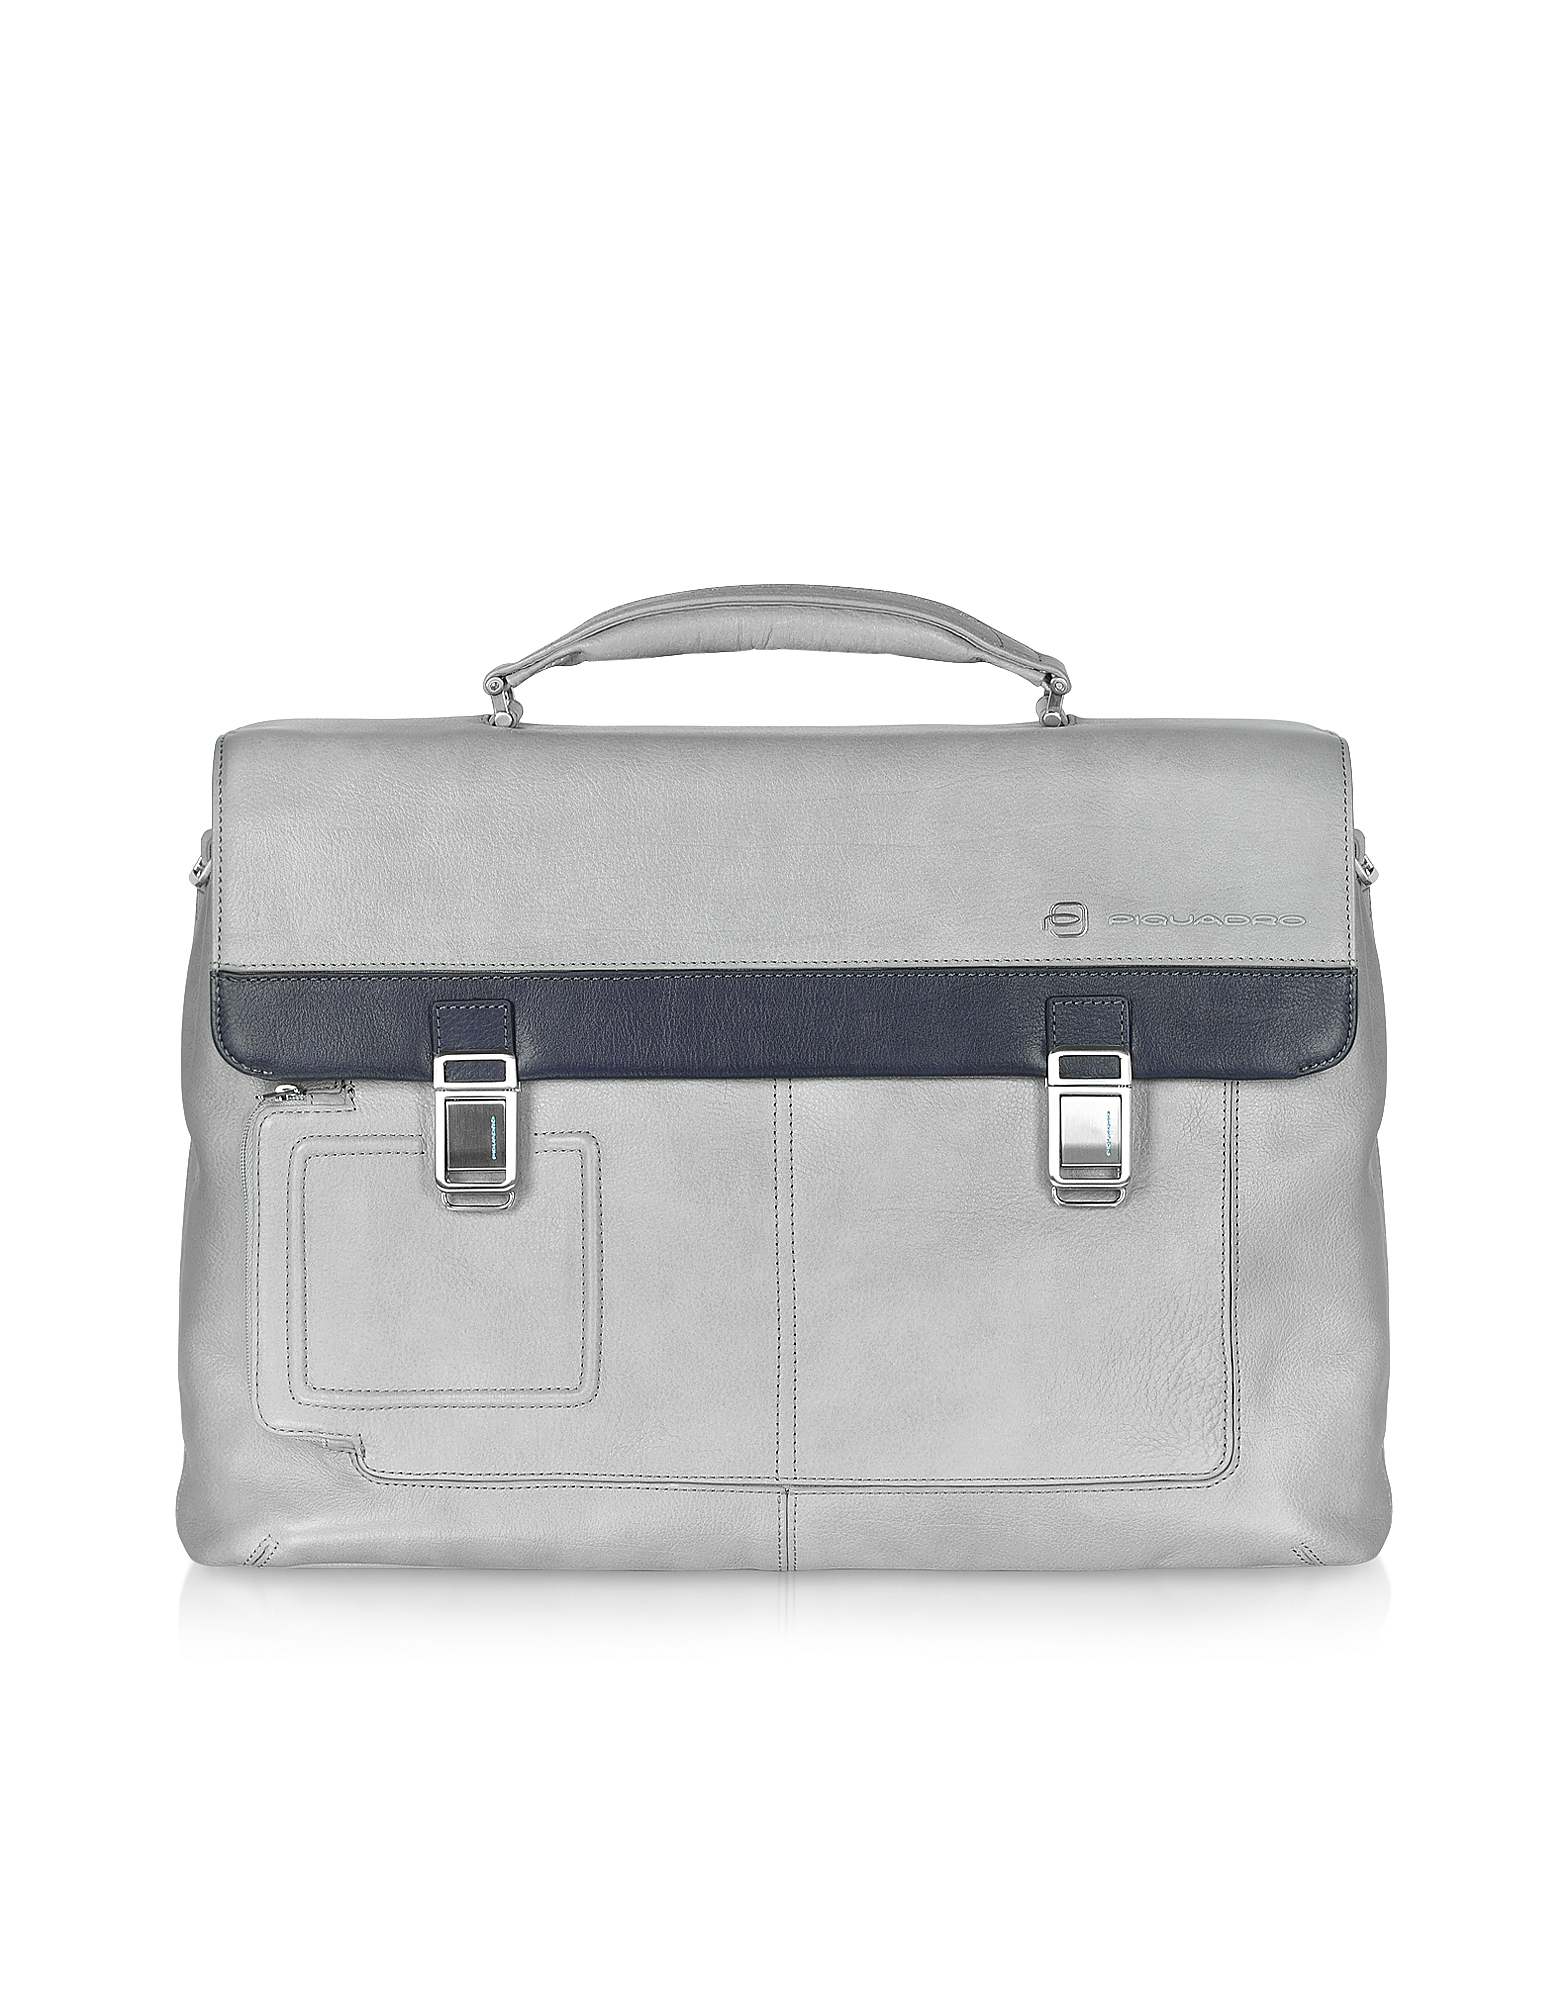 Piquadro Briefcases, Vibe - Front Pocket Laptop & i-Pad Briefcase